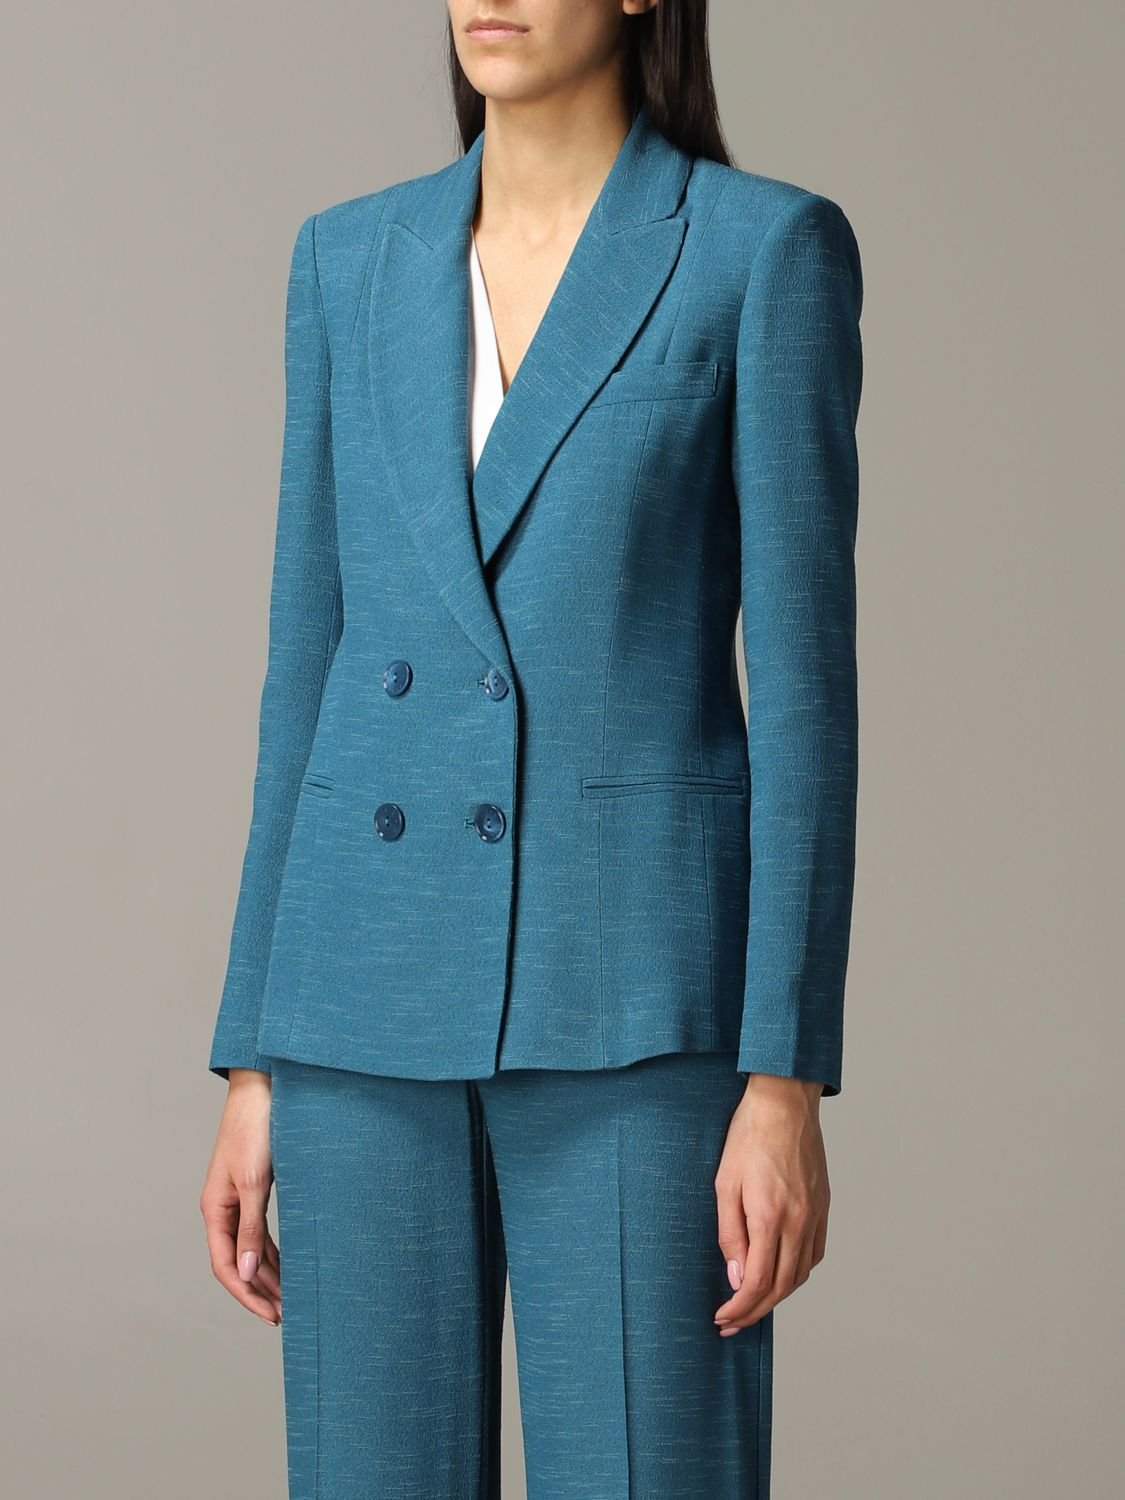 Patrizia Pepe double-breasted jacket teal 4